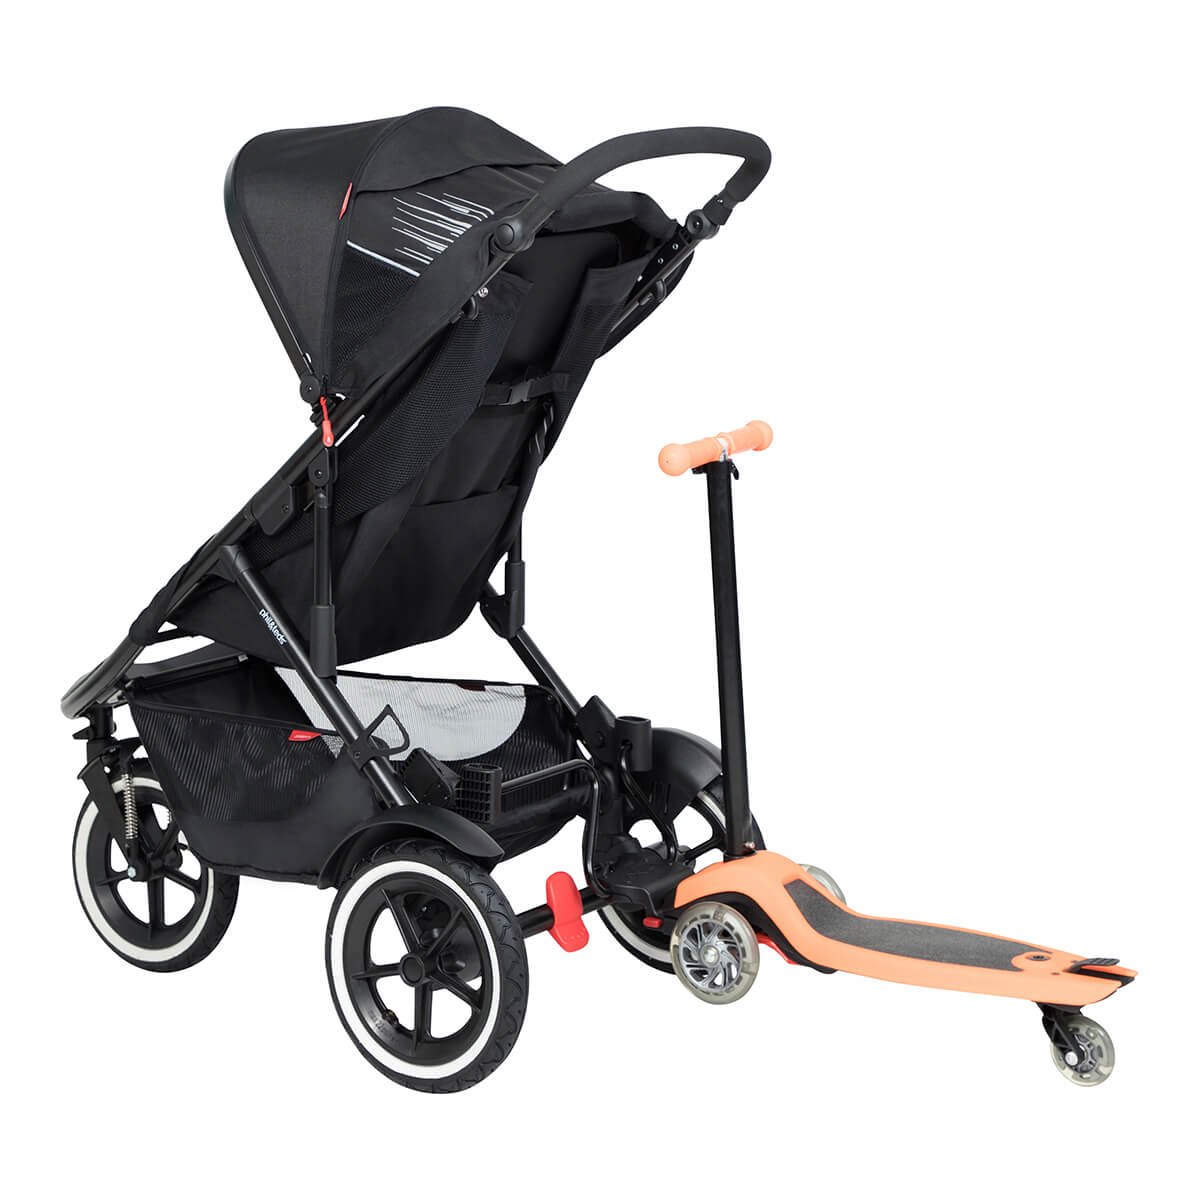 https://cdn.accentuate.io/4509528490072/19272668348504/philteds-sport-poussette-with-freerider-stroller-board-in-rear-v1626484484751.jpg?1200x1200